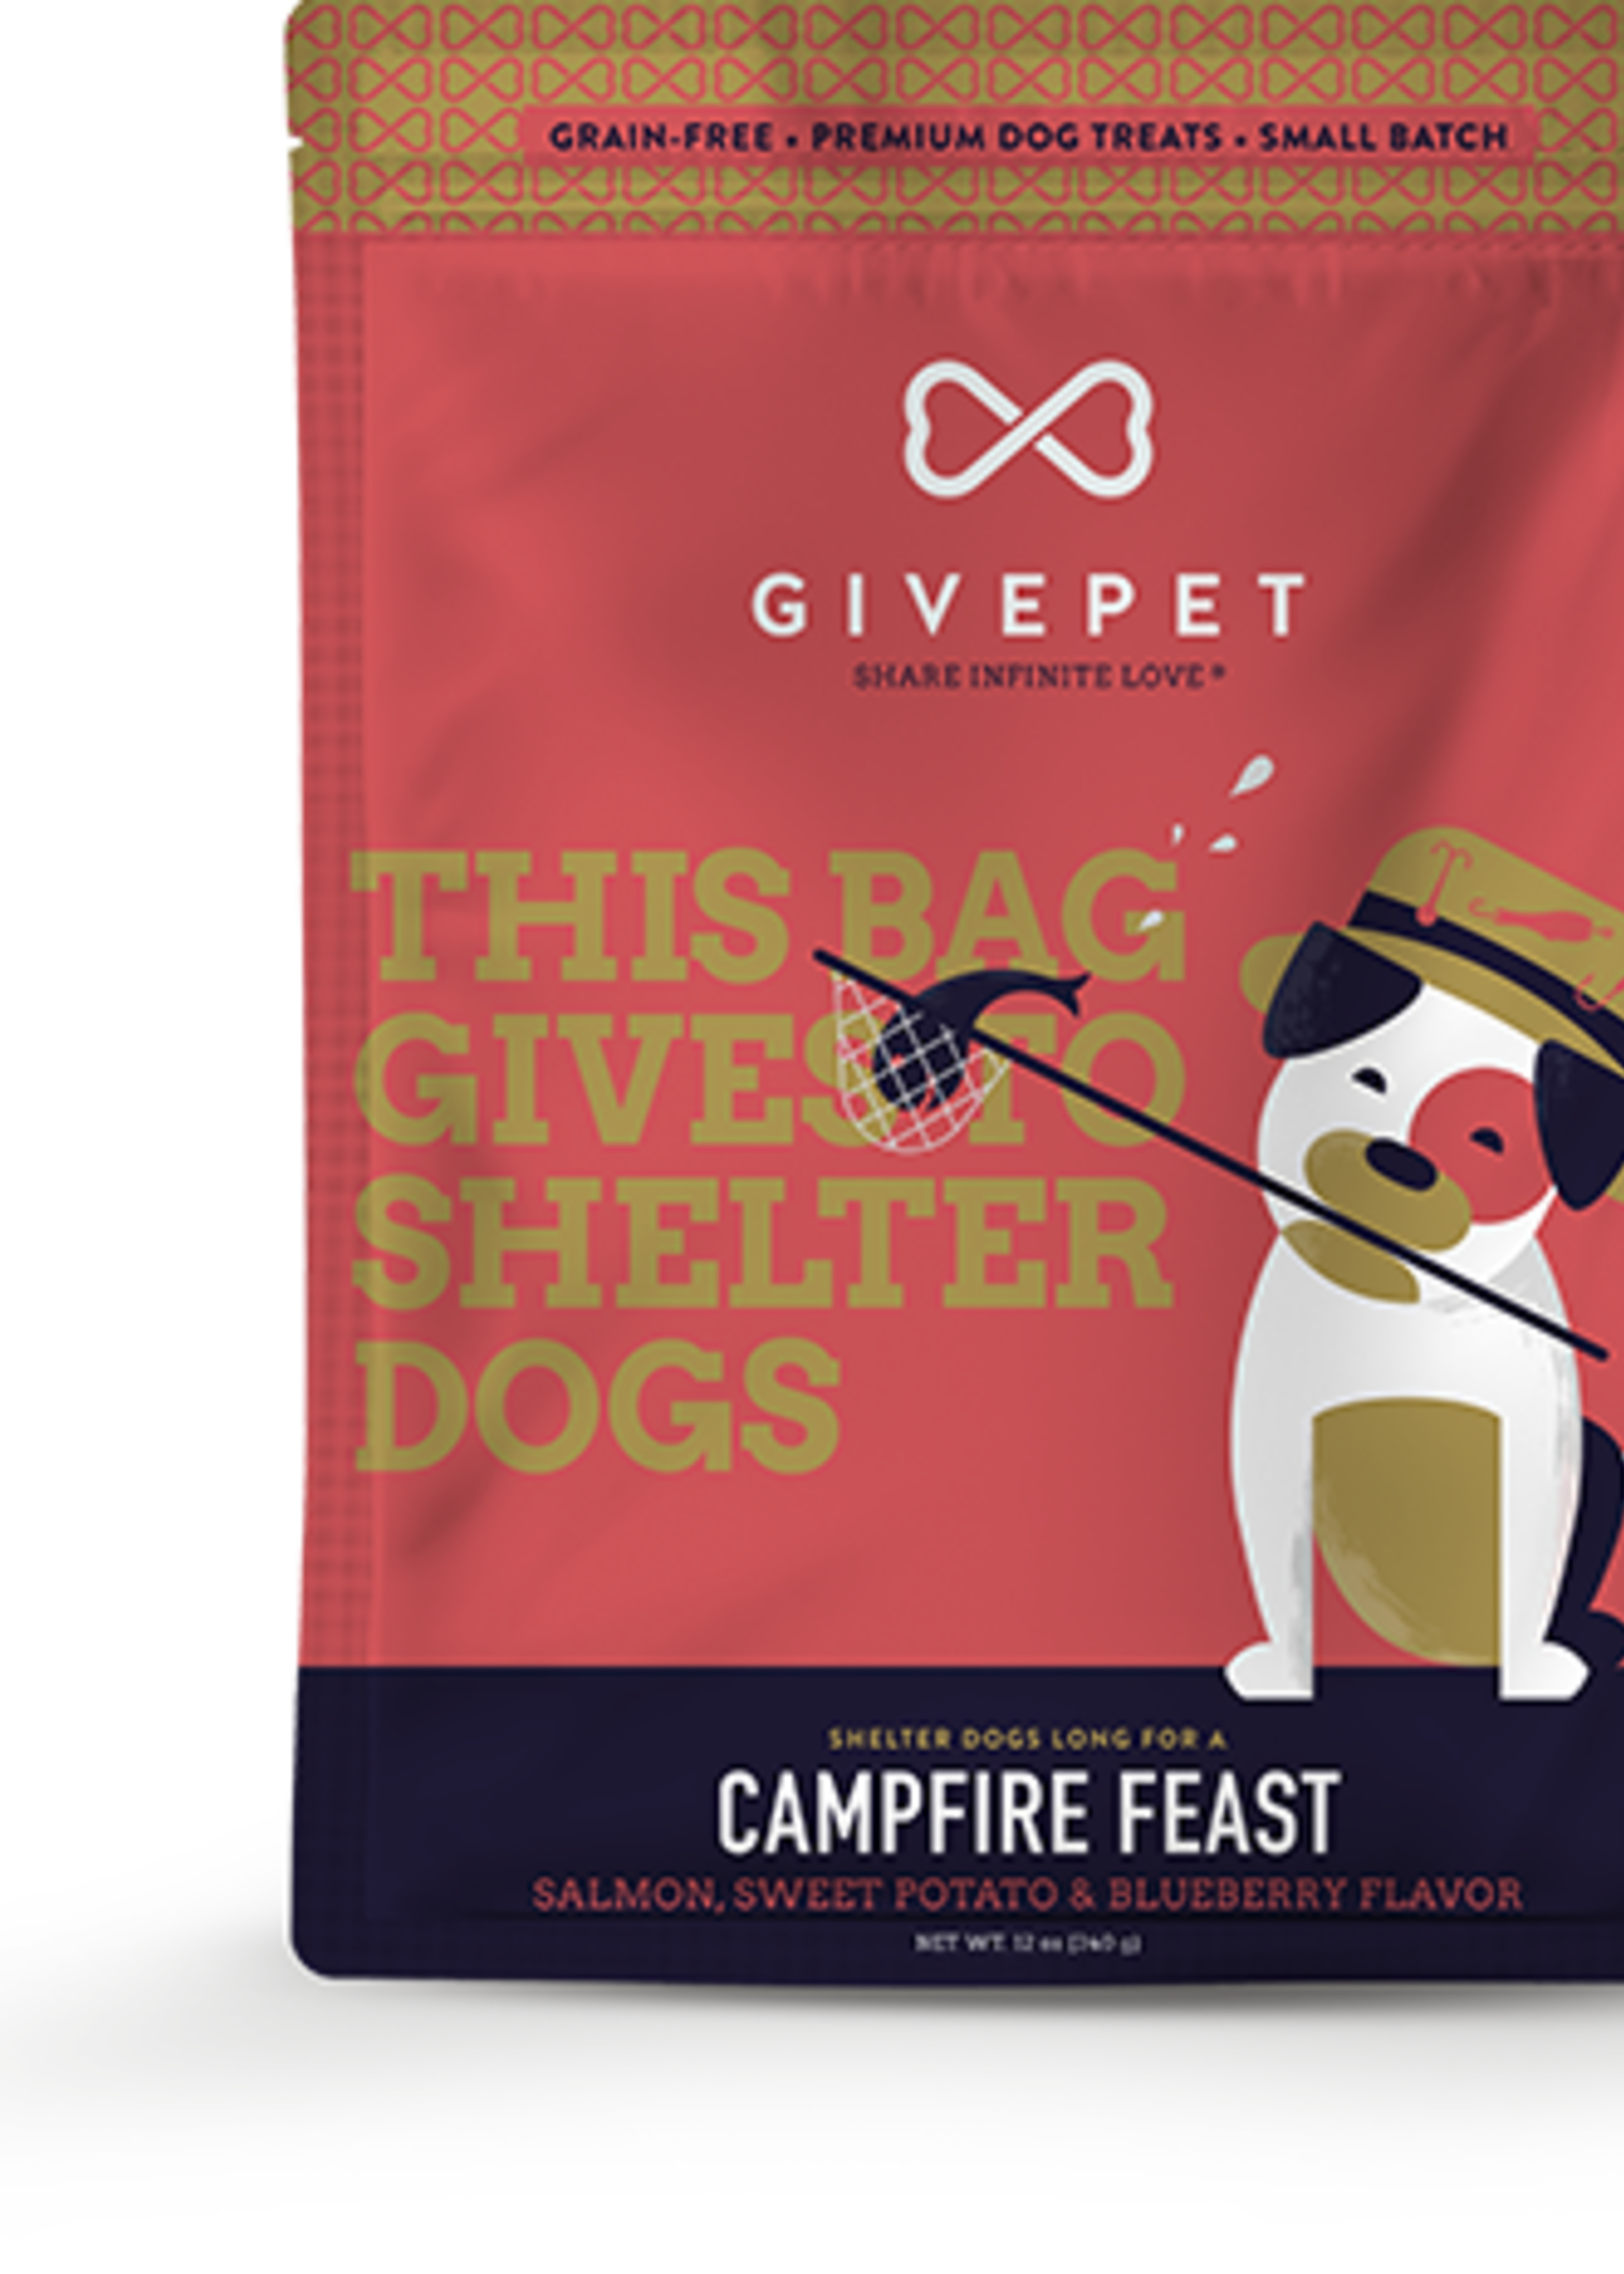 Givepet Givepet Campfire Feast 12 oz